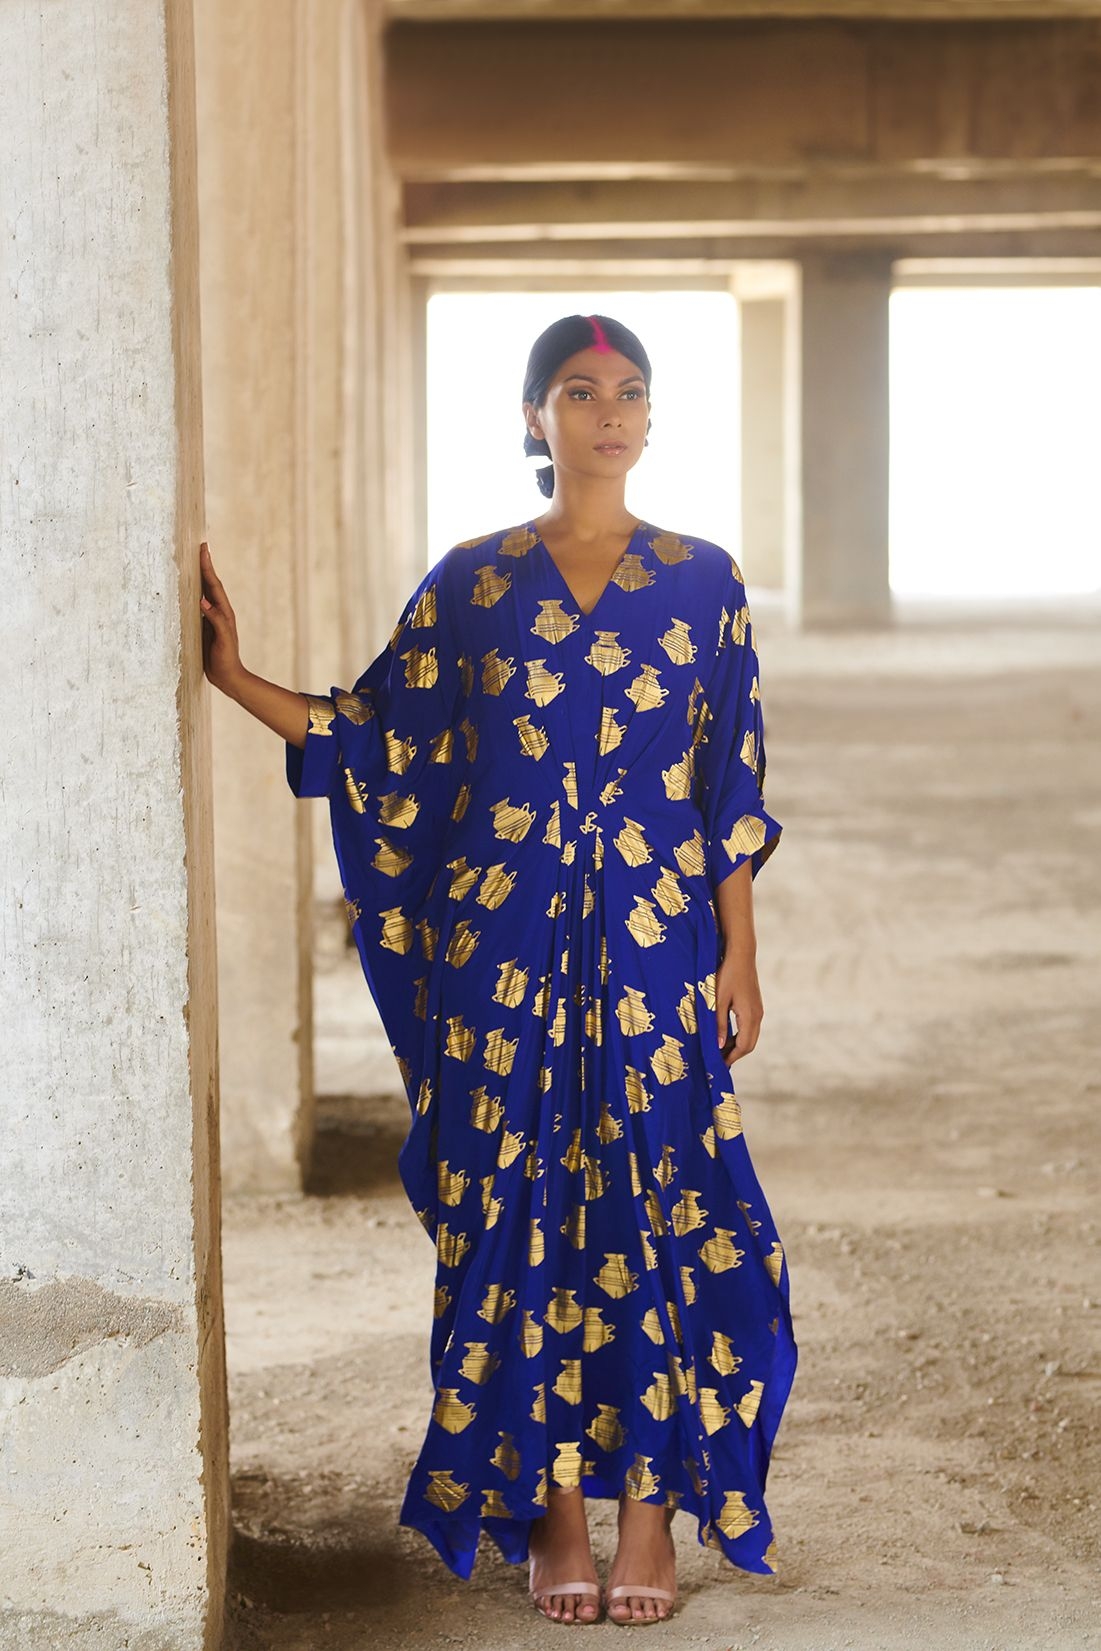 d71ac592fe9df Printed electric blue kaftan by house of Masaba for women of all shapes and  sizes